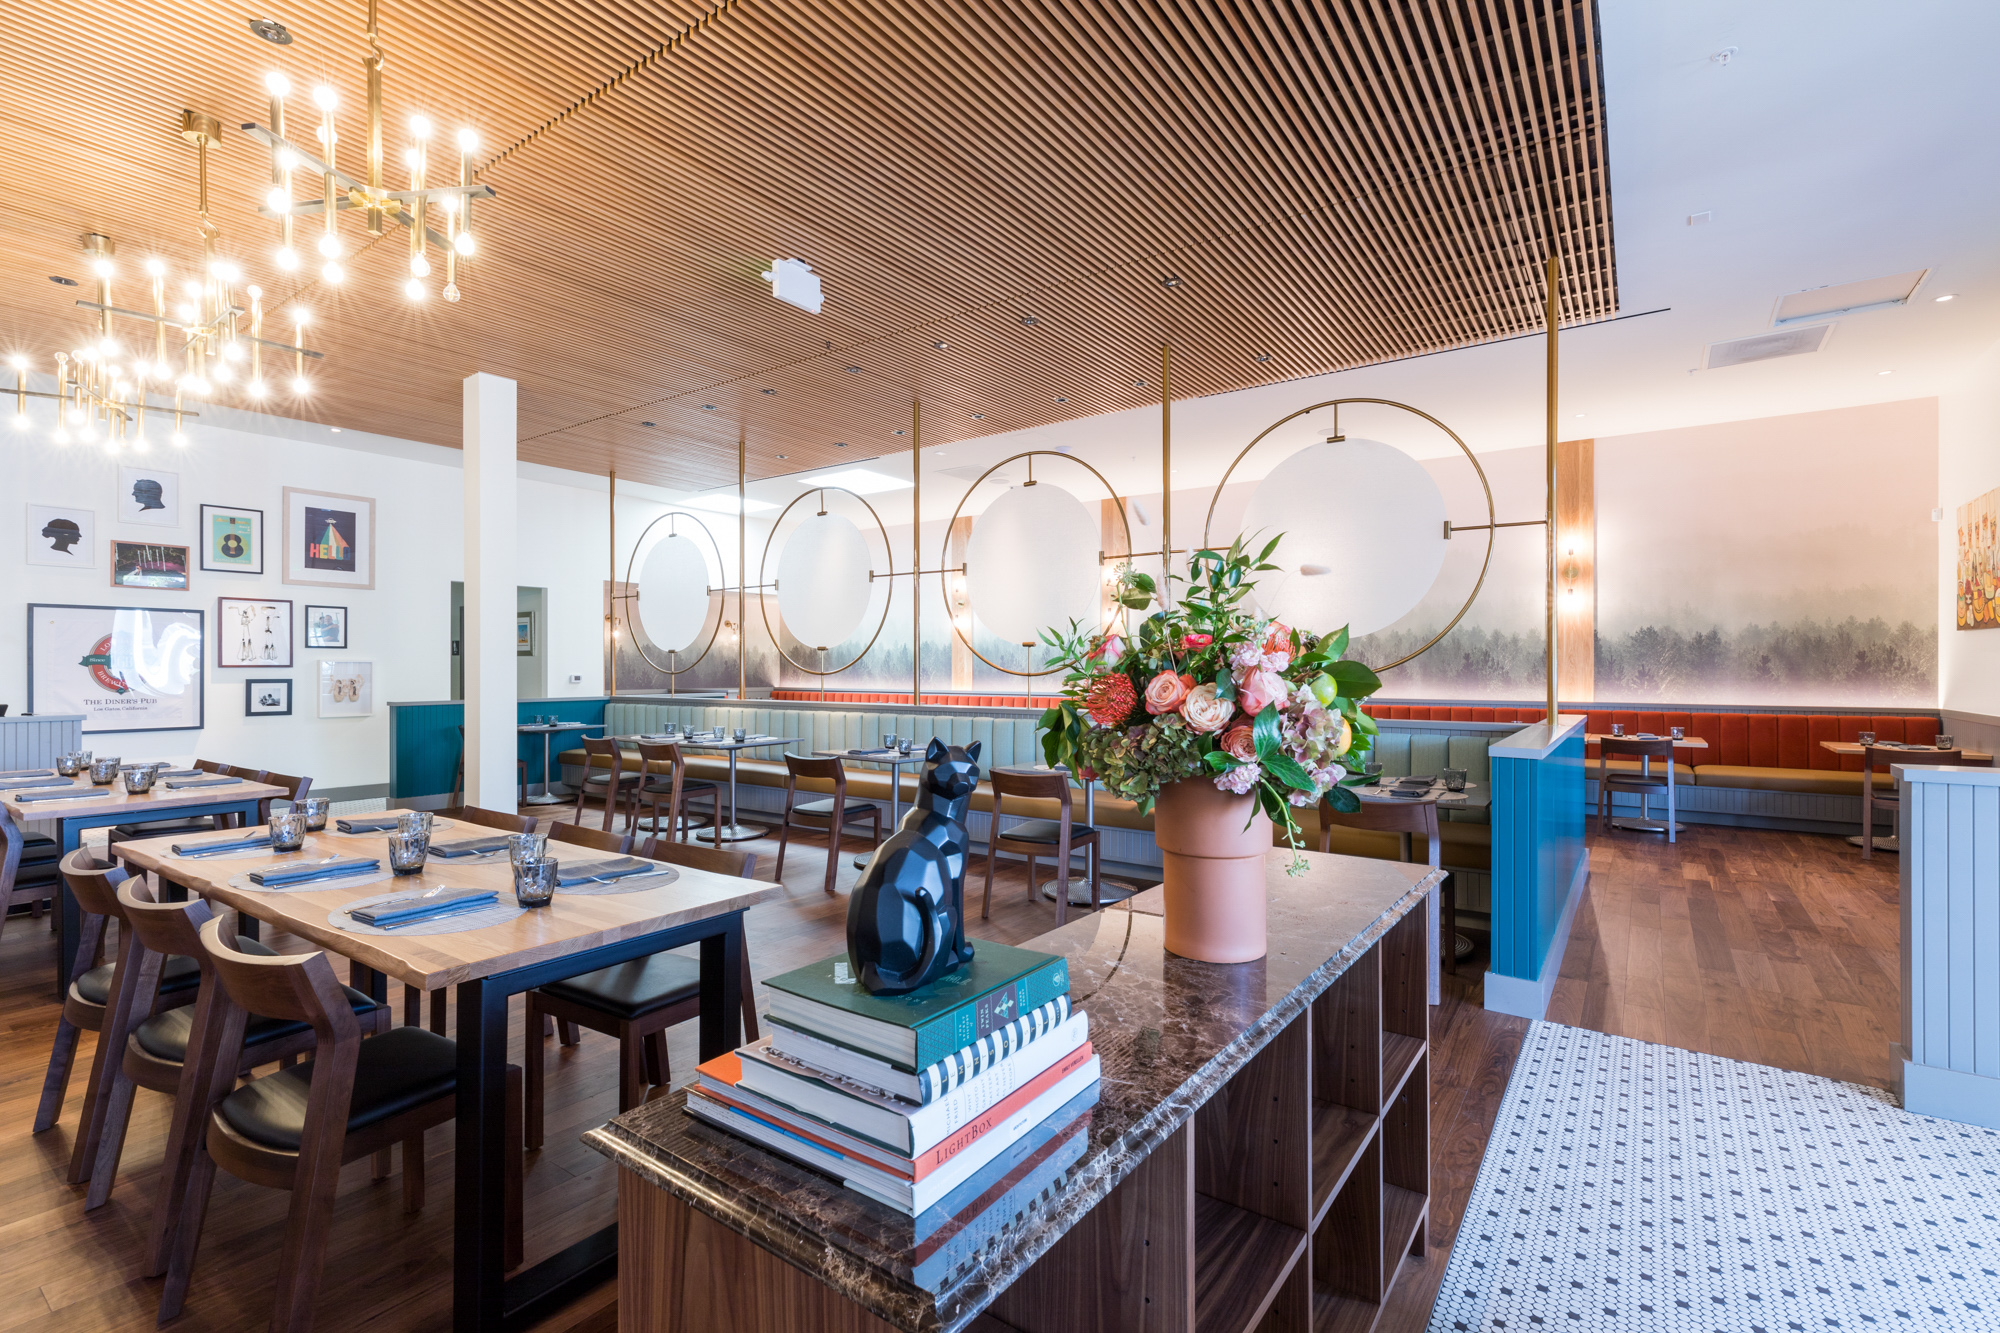 The interior of Shepherd & Sims with a mosaic tile floor, wooden tables, and white walls. Pops of color include a turquoise half-wall and a vase of flowers on the hostess stand.